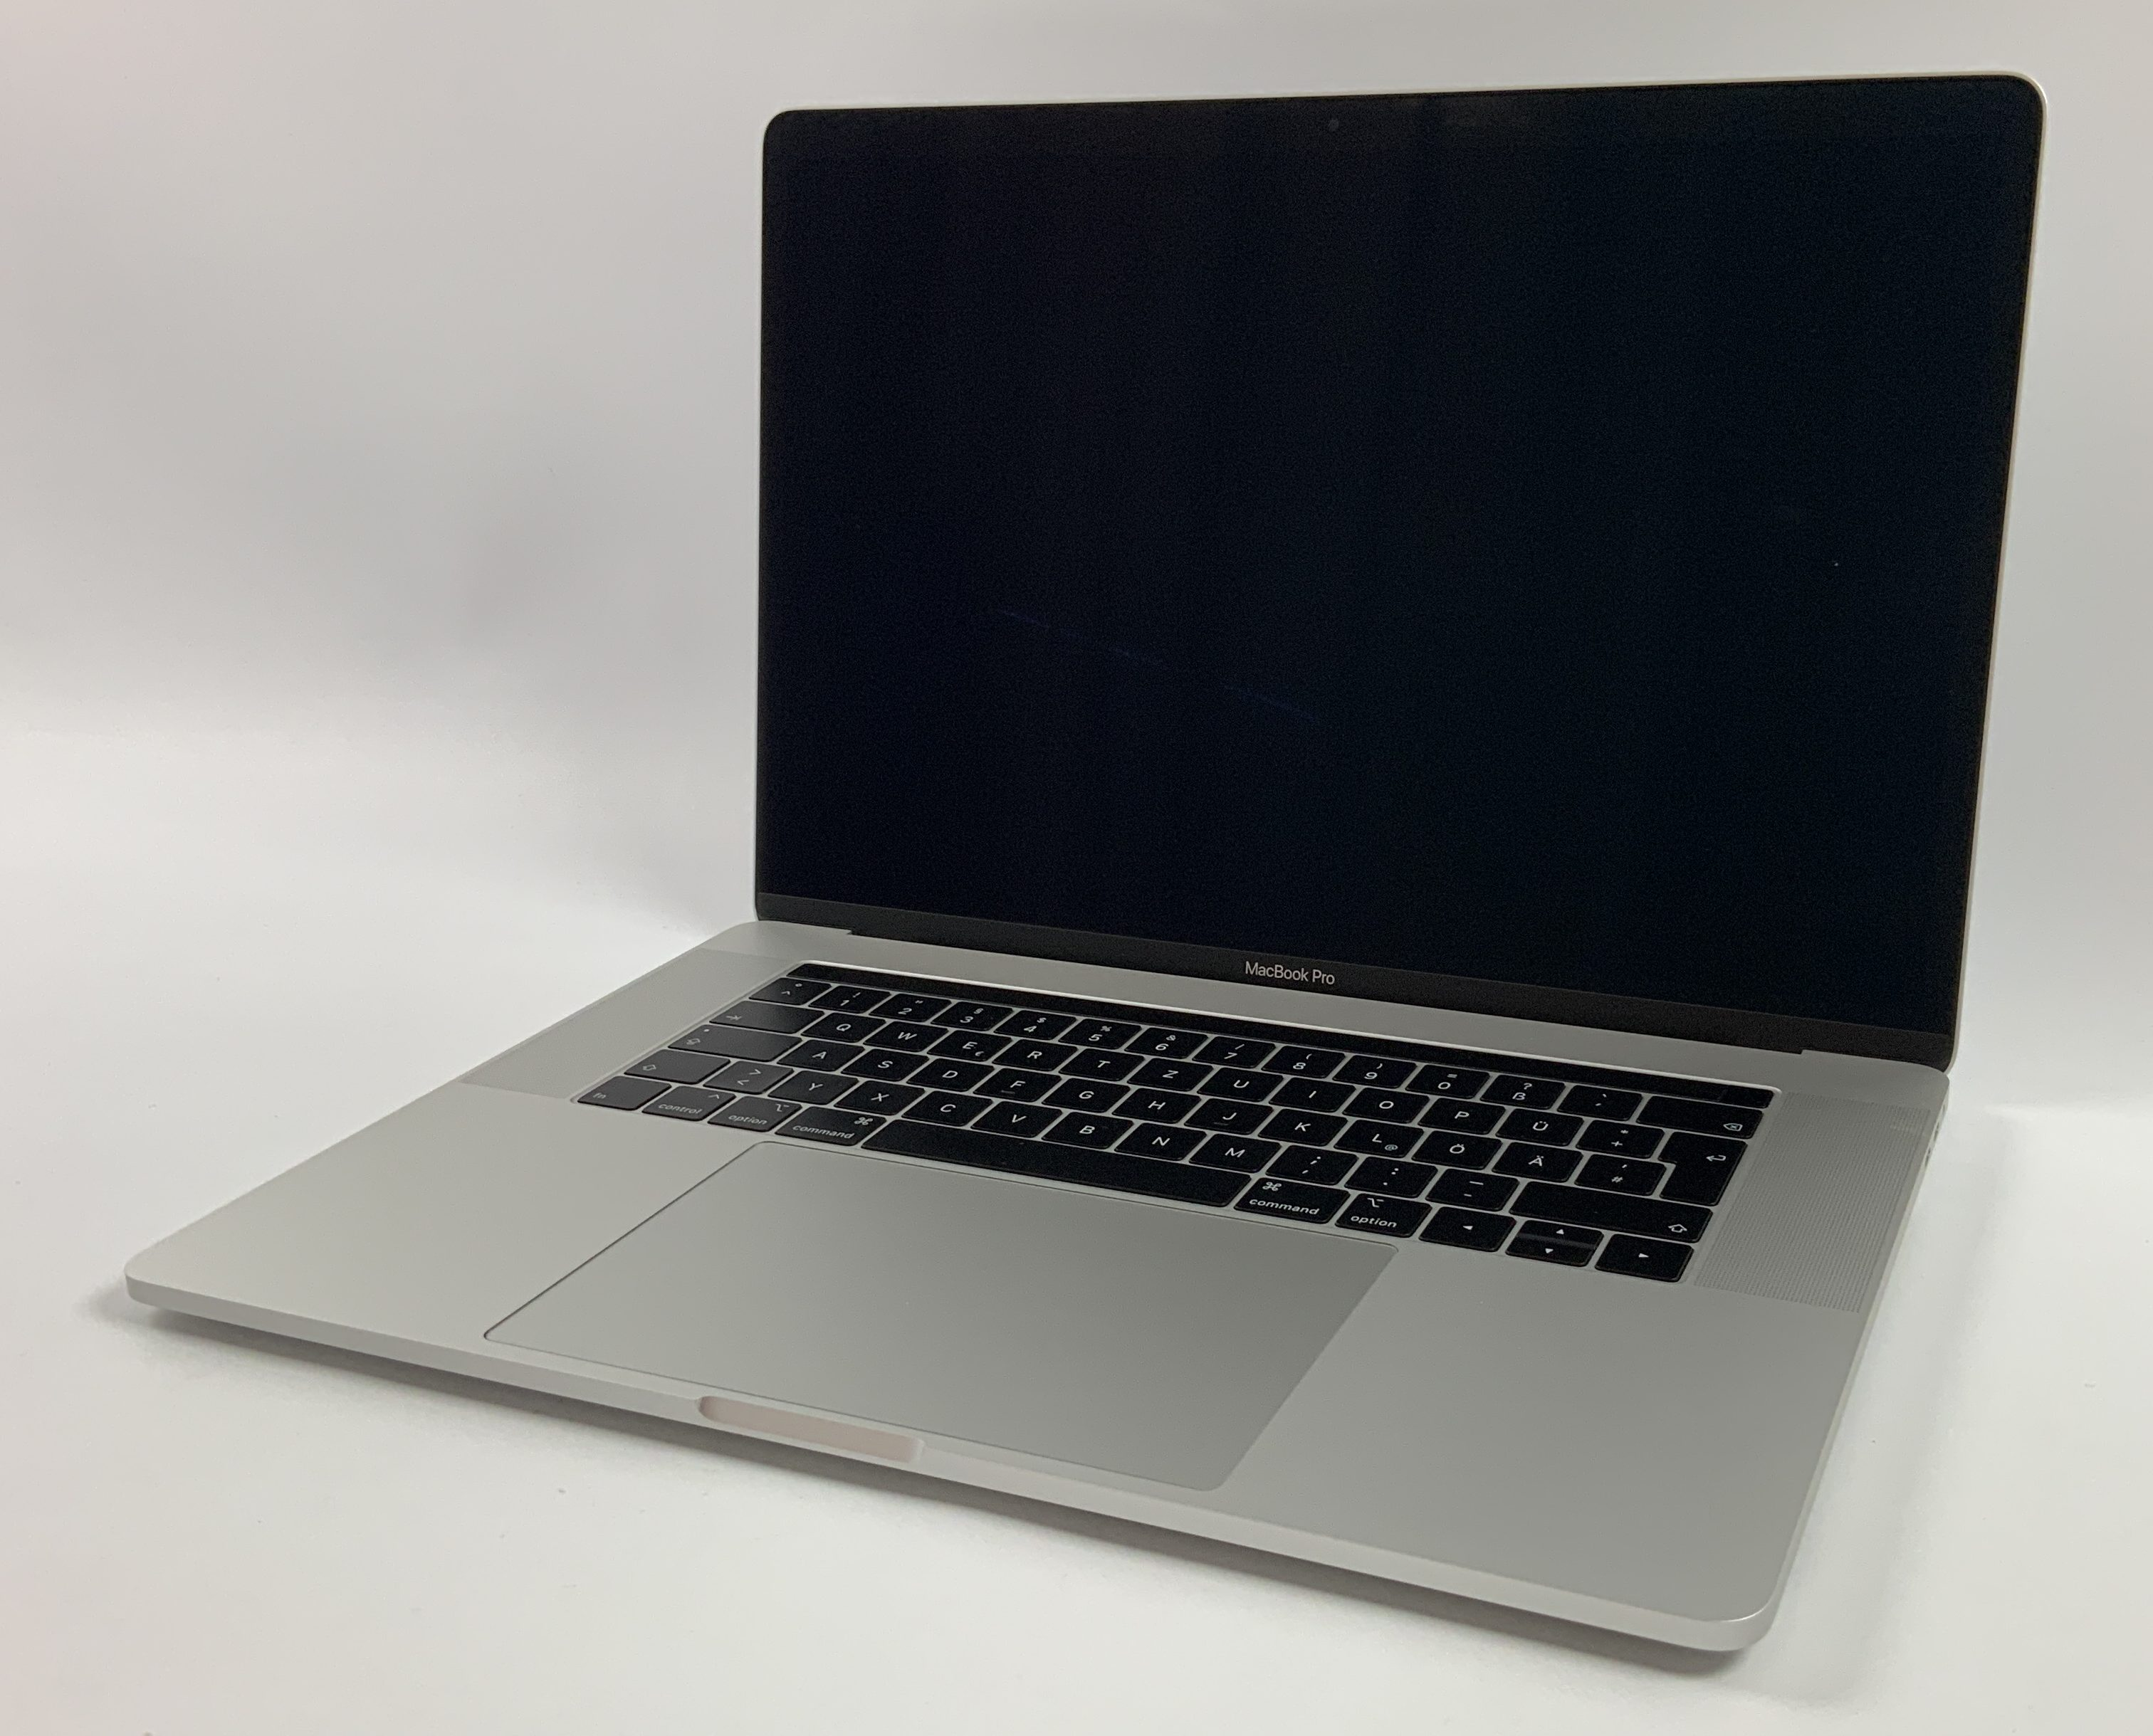 "MacBook Pro 15"" Touch Bar Mid 2018 (Intel 6-Core i7 2.2 GHz 32 GB RAM 512 GB SSD), Silver, Intel 6-Core i7 2.2 GHz, 32 GB RAM, 512 GB SSD, Kuva 1"